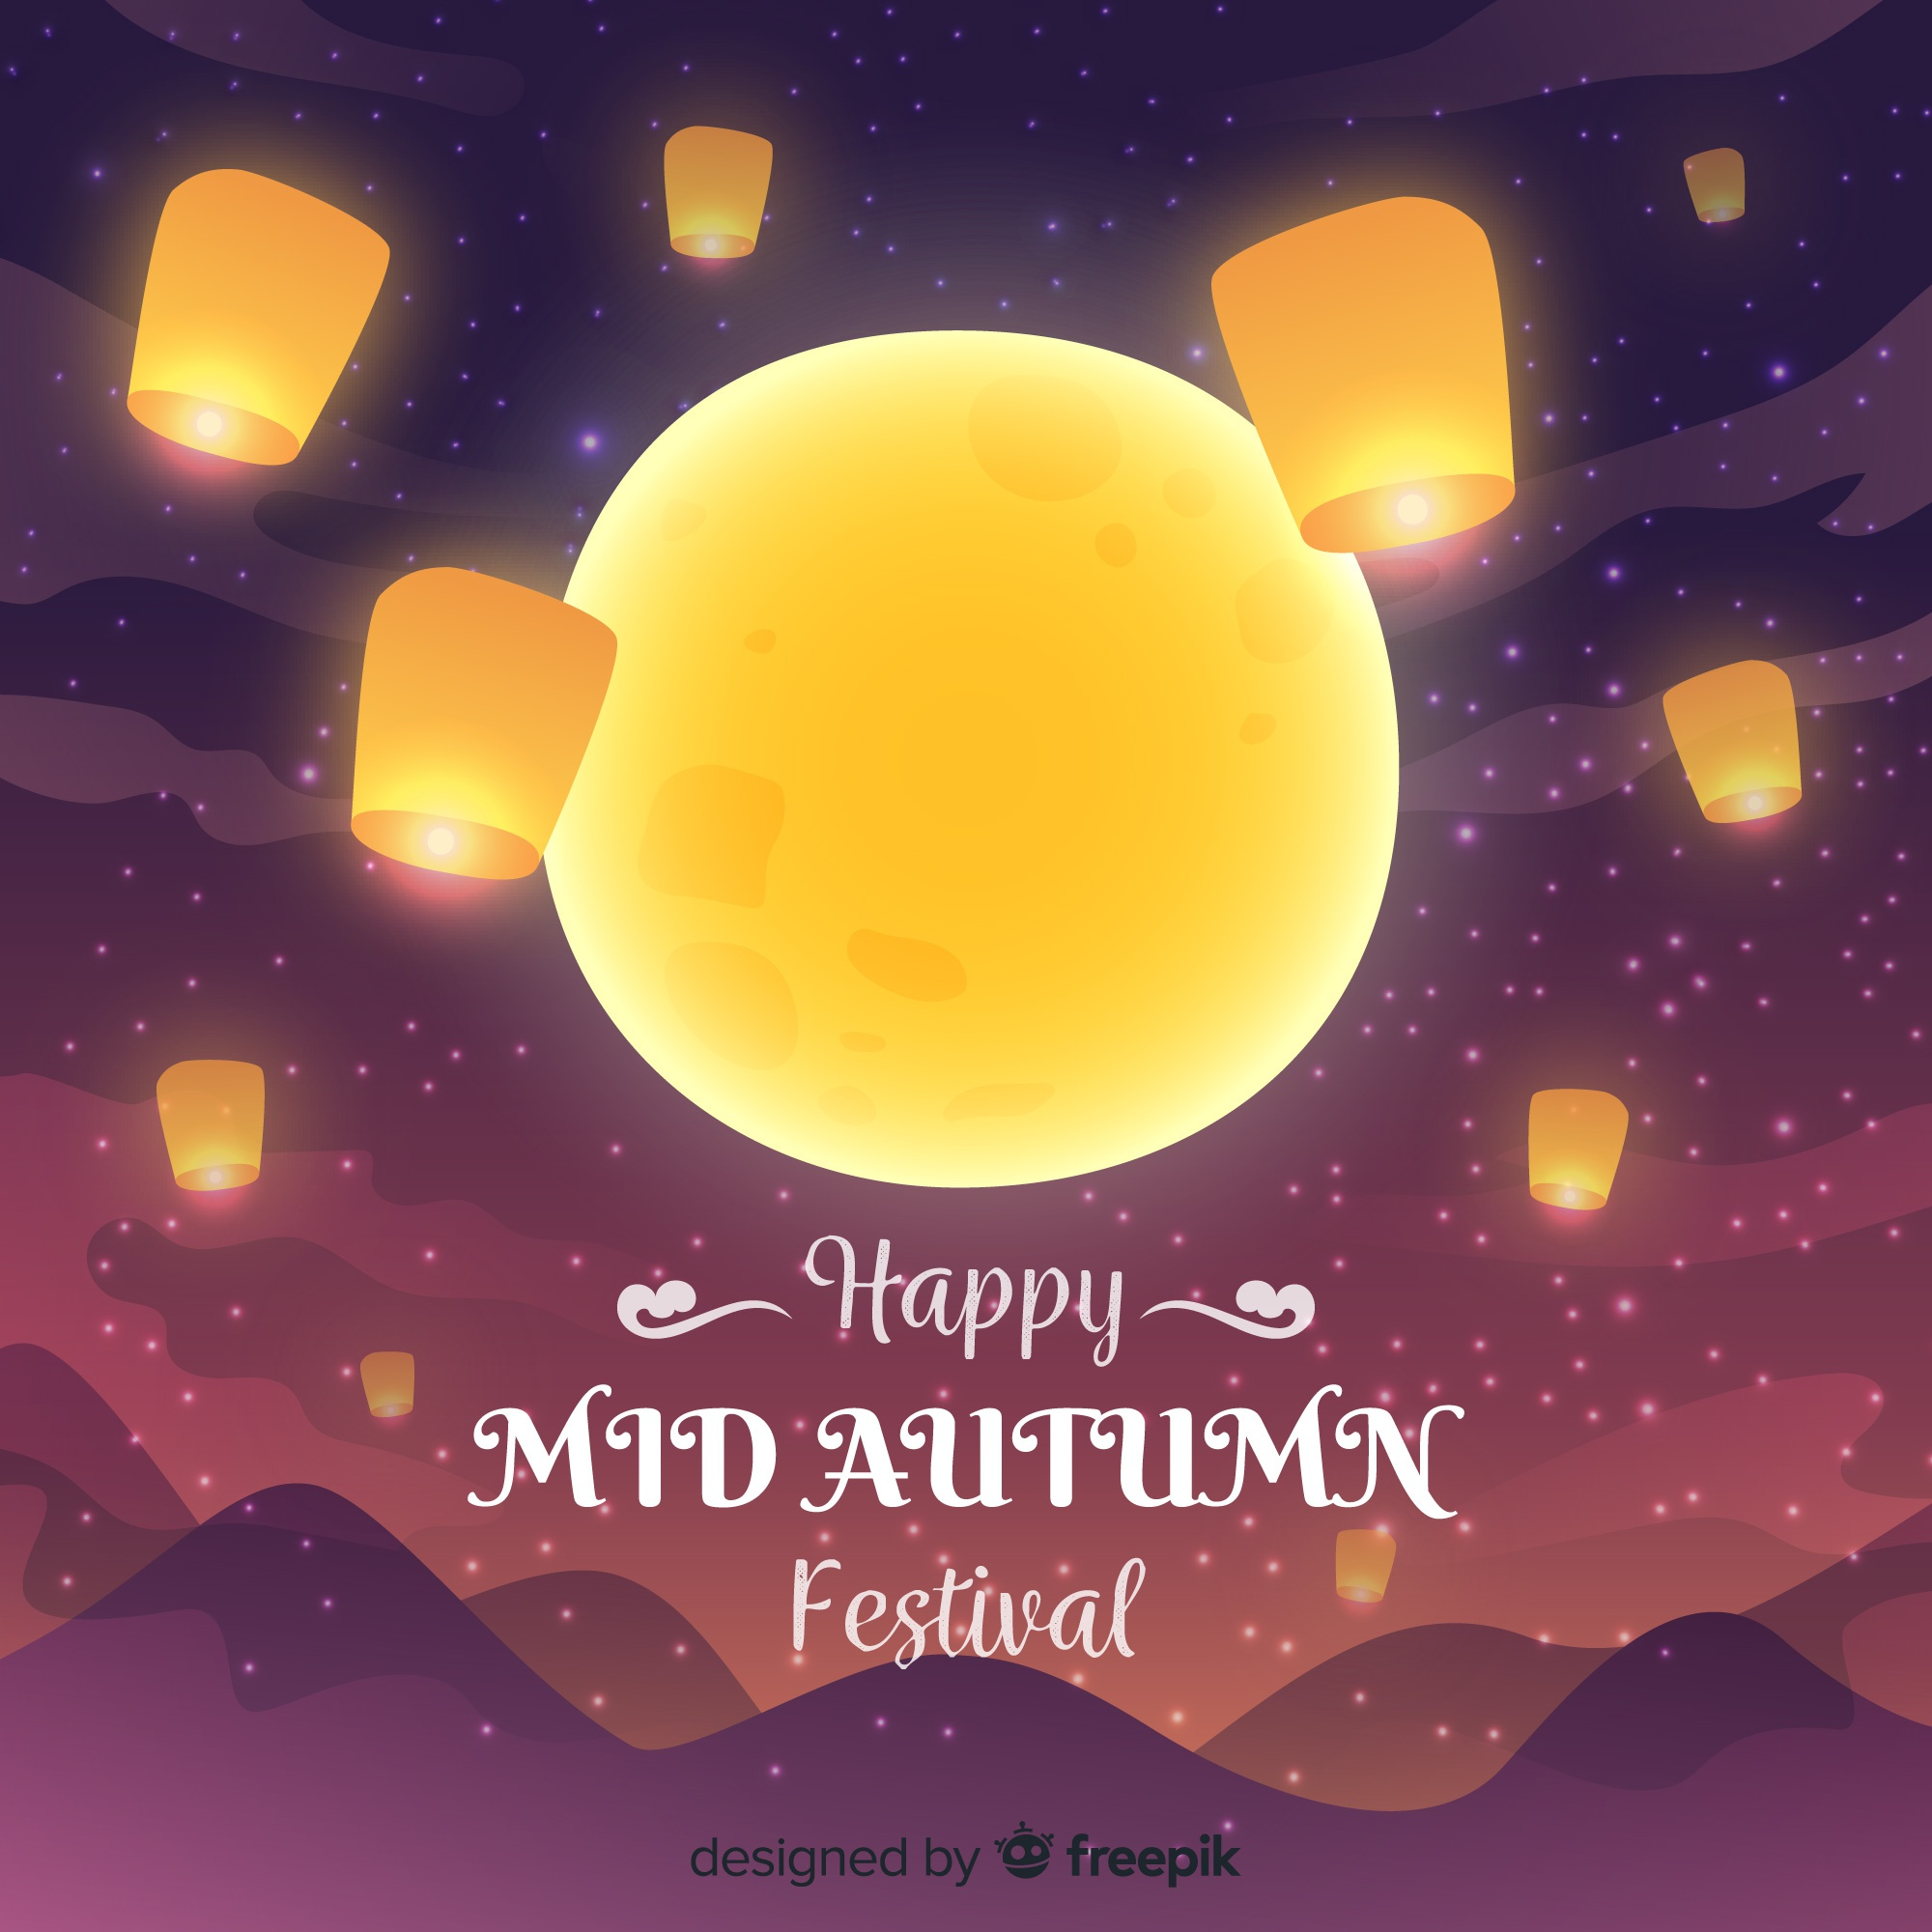 Mid autumn festival background in hand drawn style with big moon